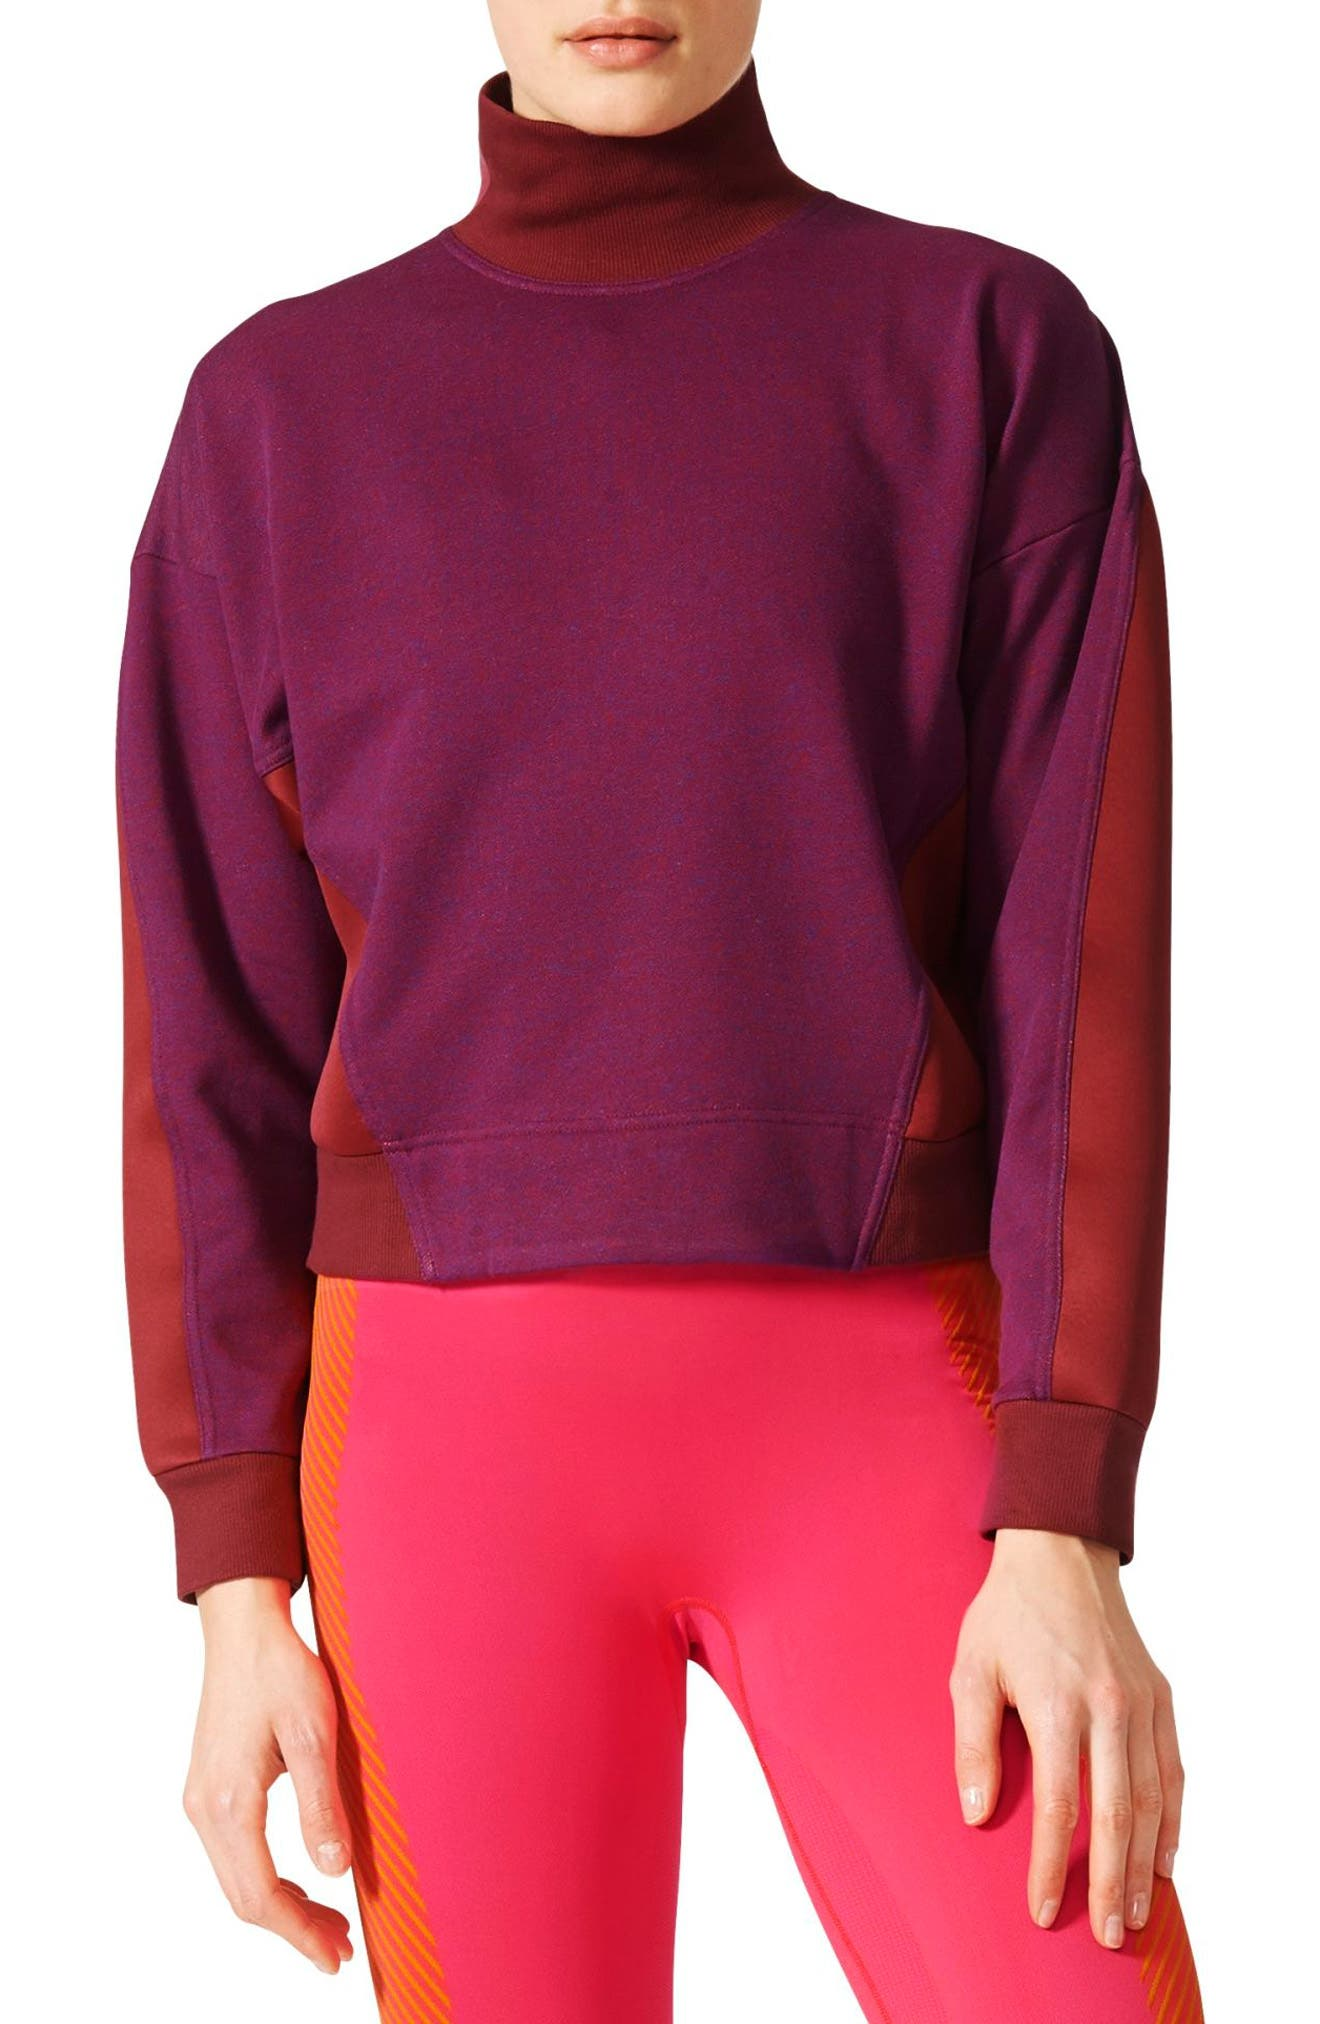 Main Image - adidas by Stella McCartney Yoga Turtleneck Sweatshirt